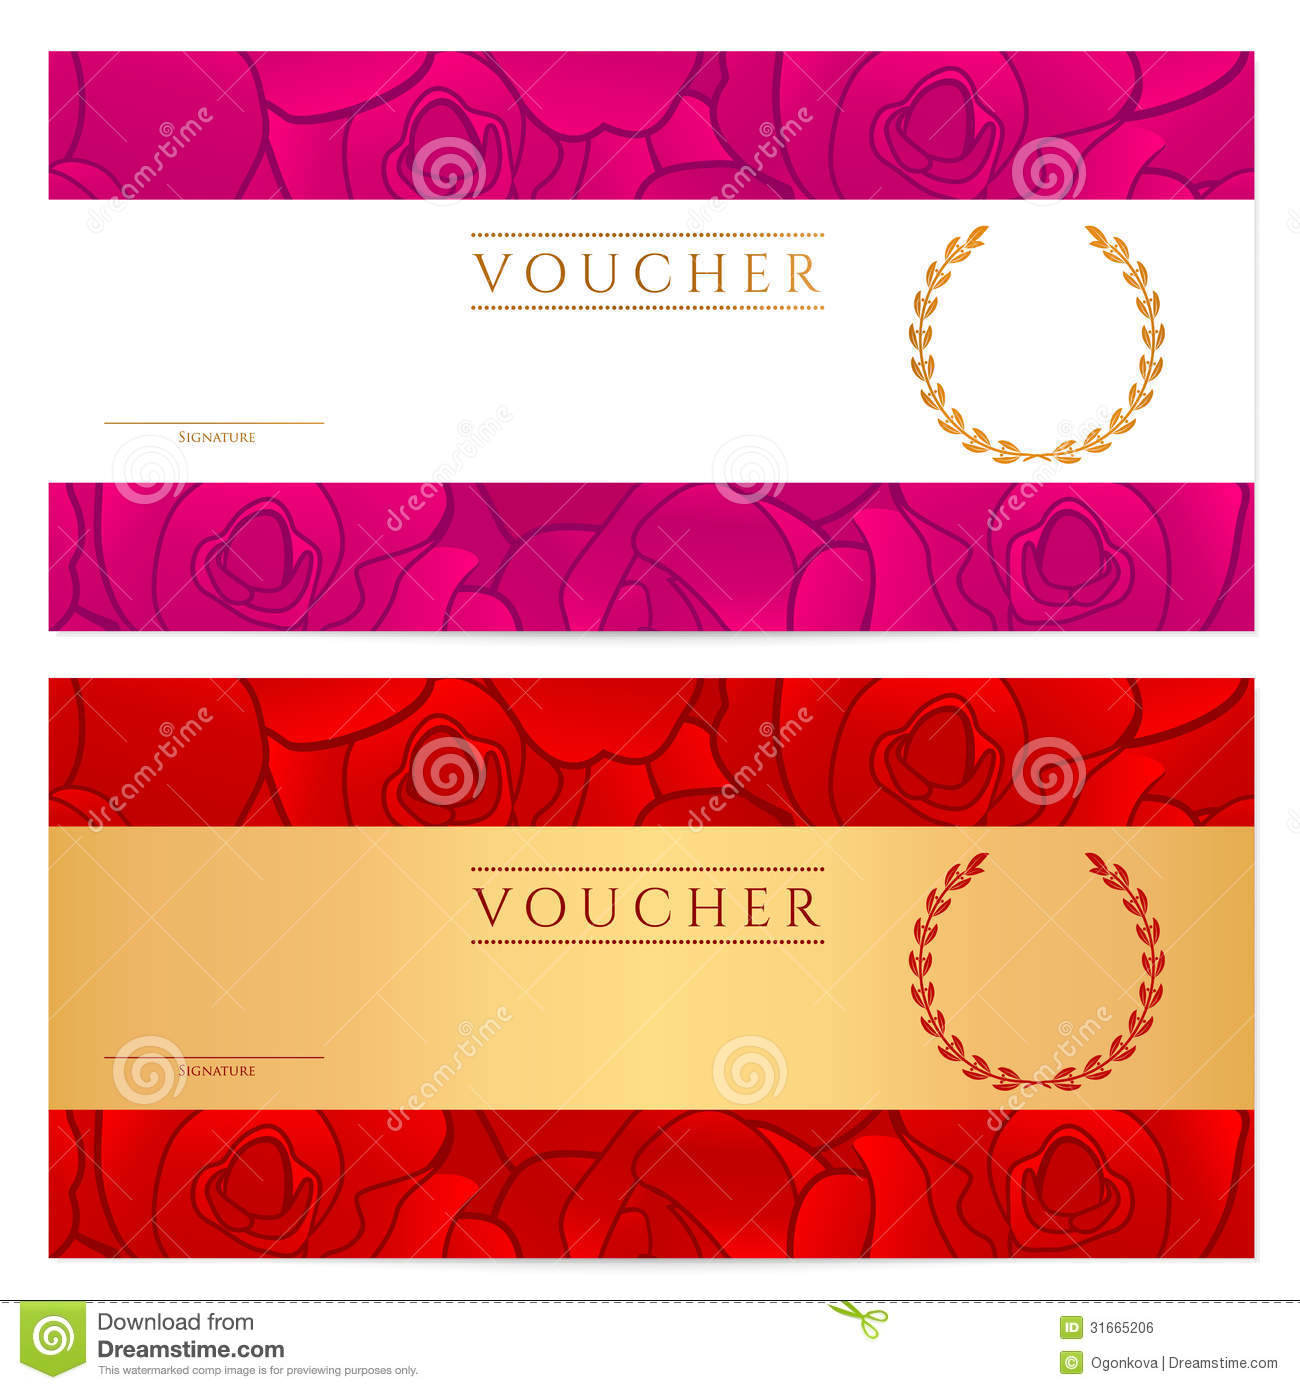 Awesome Voucher (Gift Certificate, Coupon) Template. Rose Royalty Free Stock Image Regarding Free Voucher Design Template